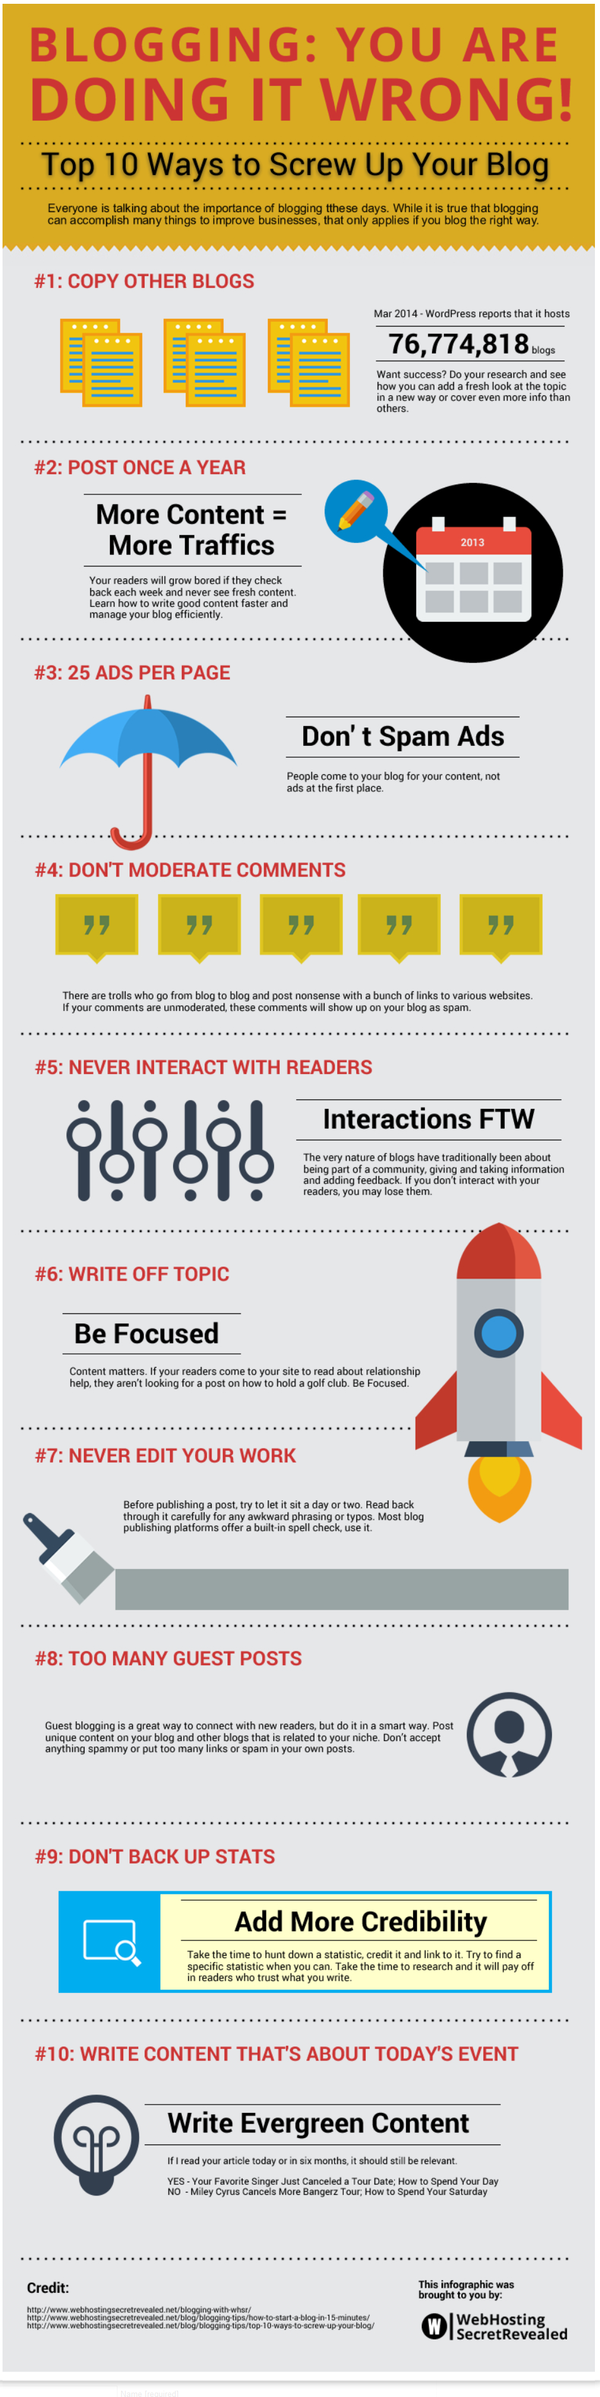 Infographic - Top 10 ways to screw up your blog